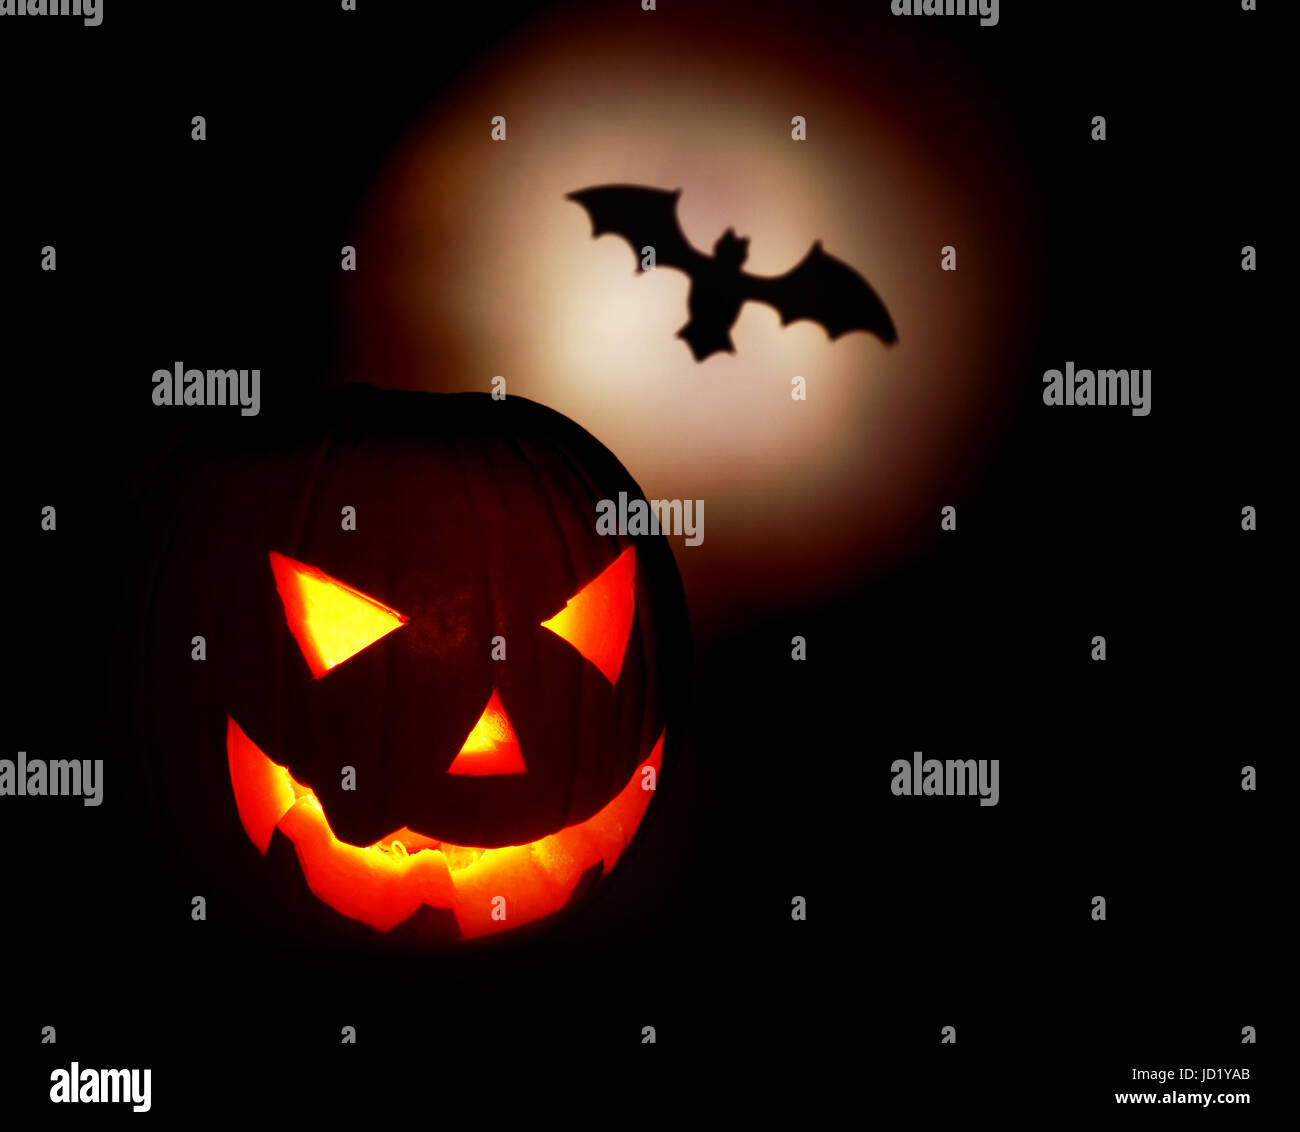 Halloween Glow Pumpkin Bat Pictogram Stock Photos Halloween Glow